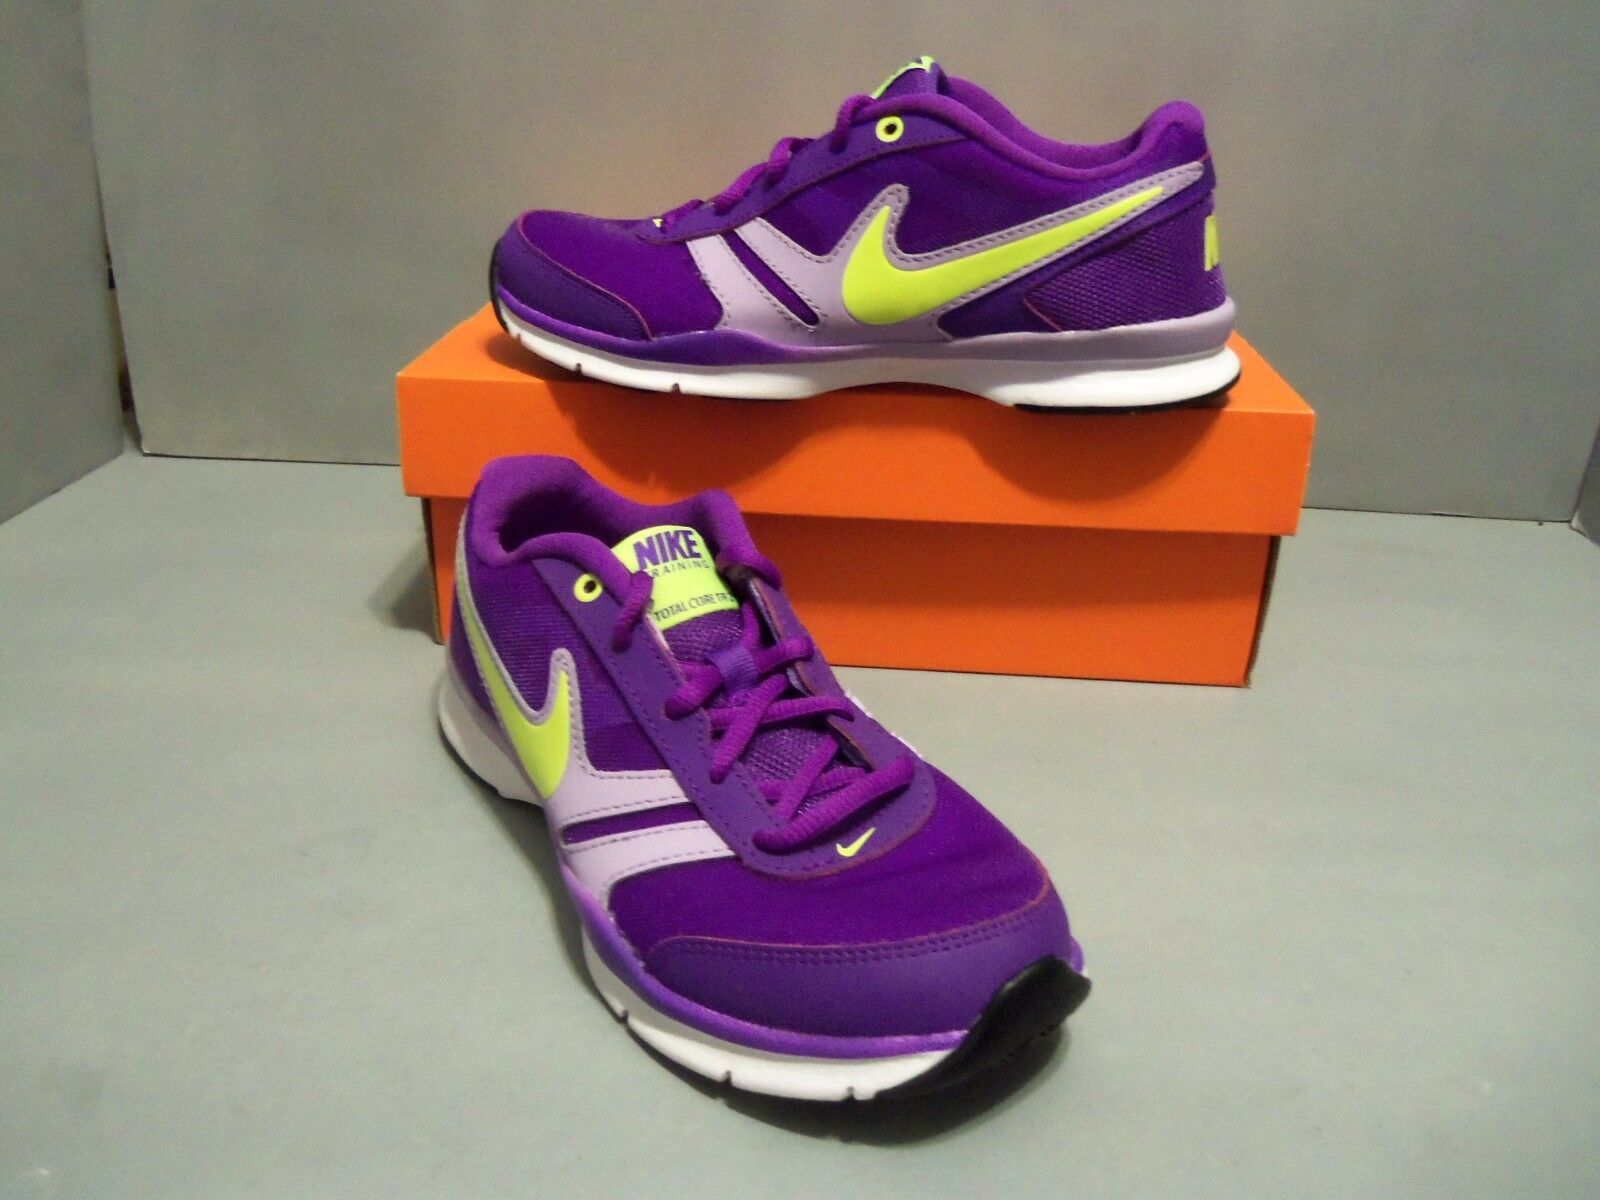 reputable site 9b19f 524b7 NIKE Women s Purple Total Core TR 2 2 2 Trainer Running Shoes. New In Box